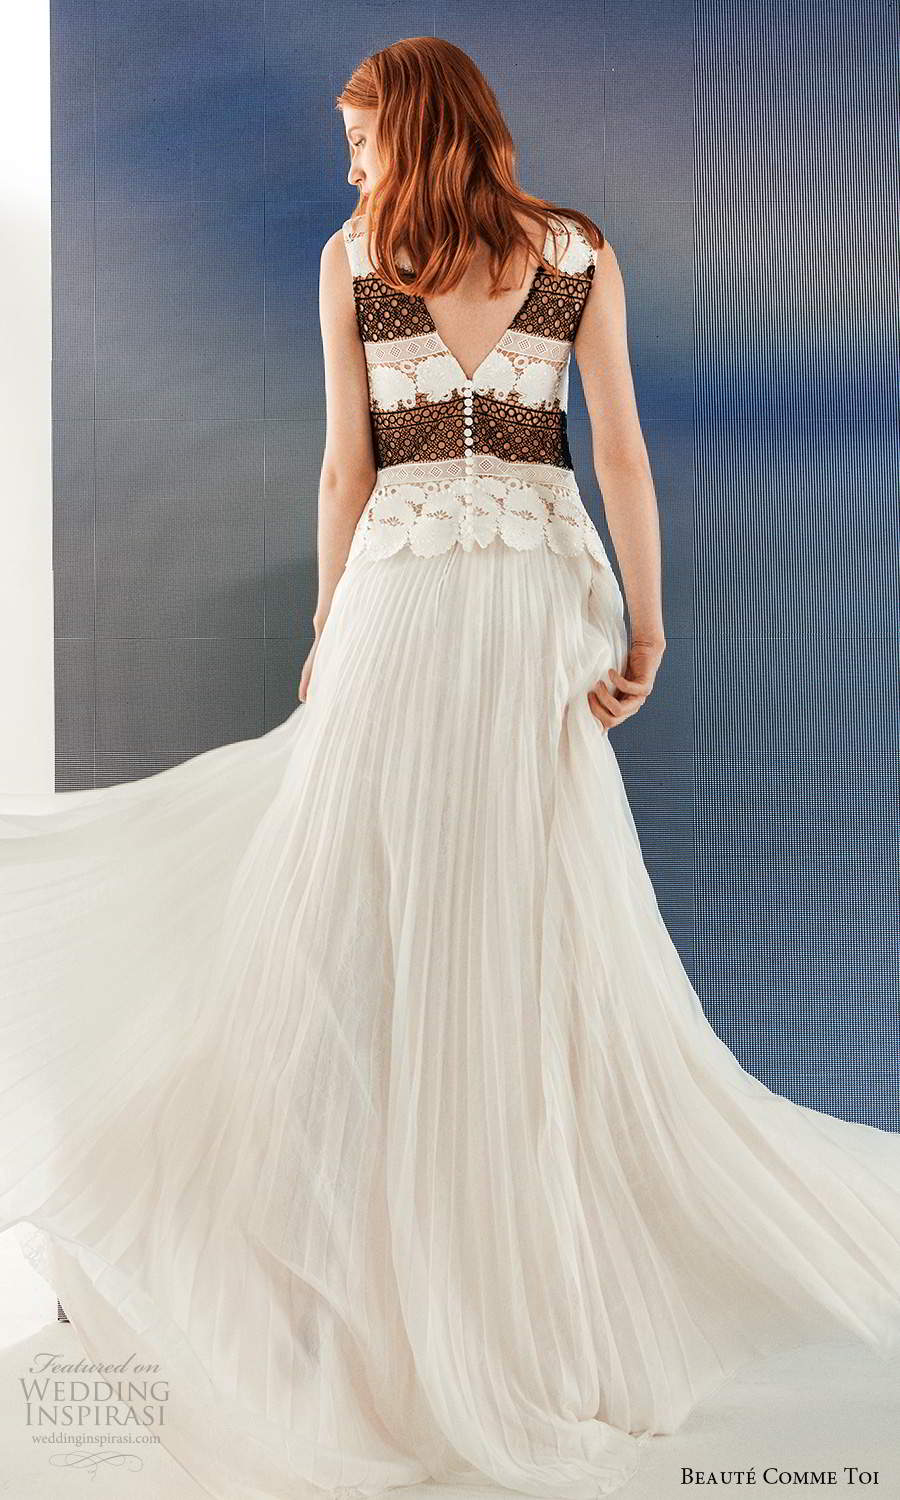 beaute comme toi fall 2021 bridal sleeveless thick straps bateau neckline embellished bodice pleated skirt a line wedding dress (7) bv